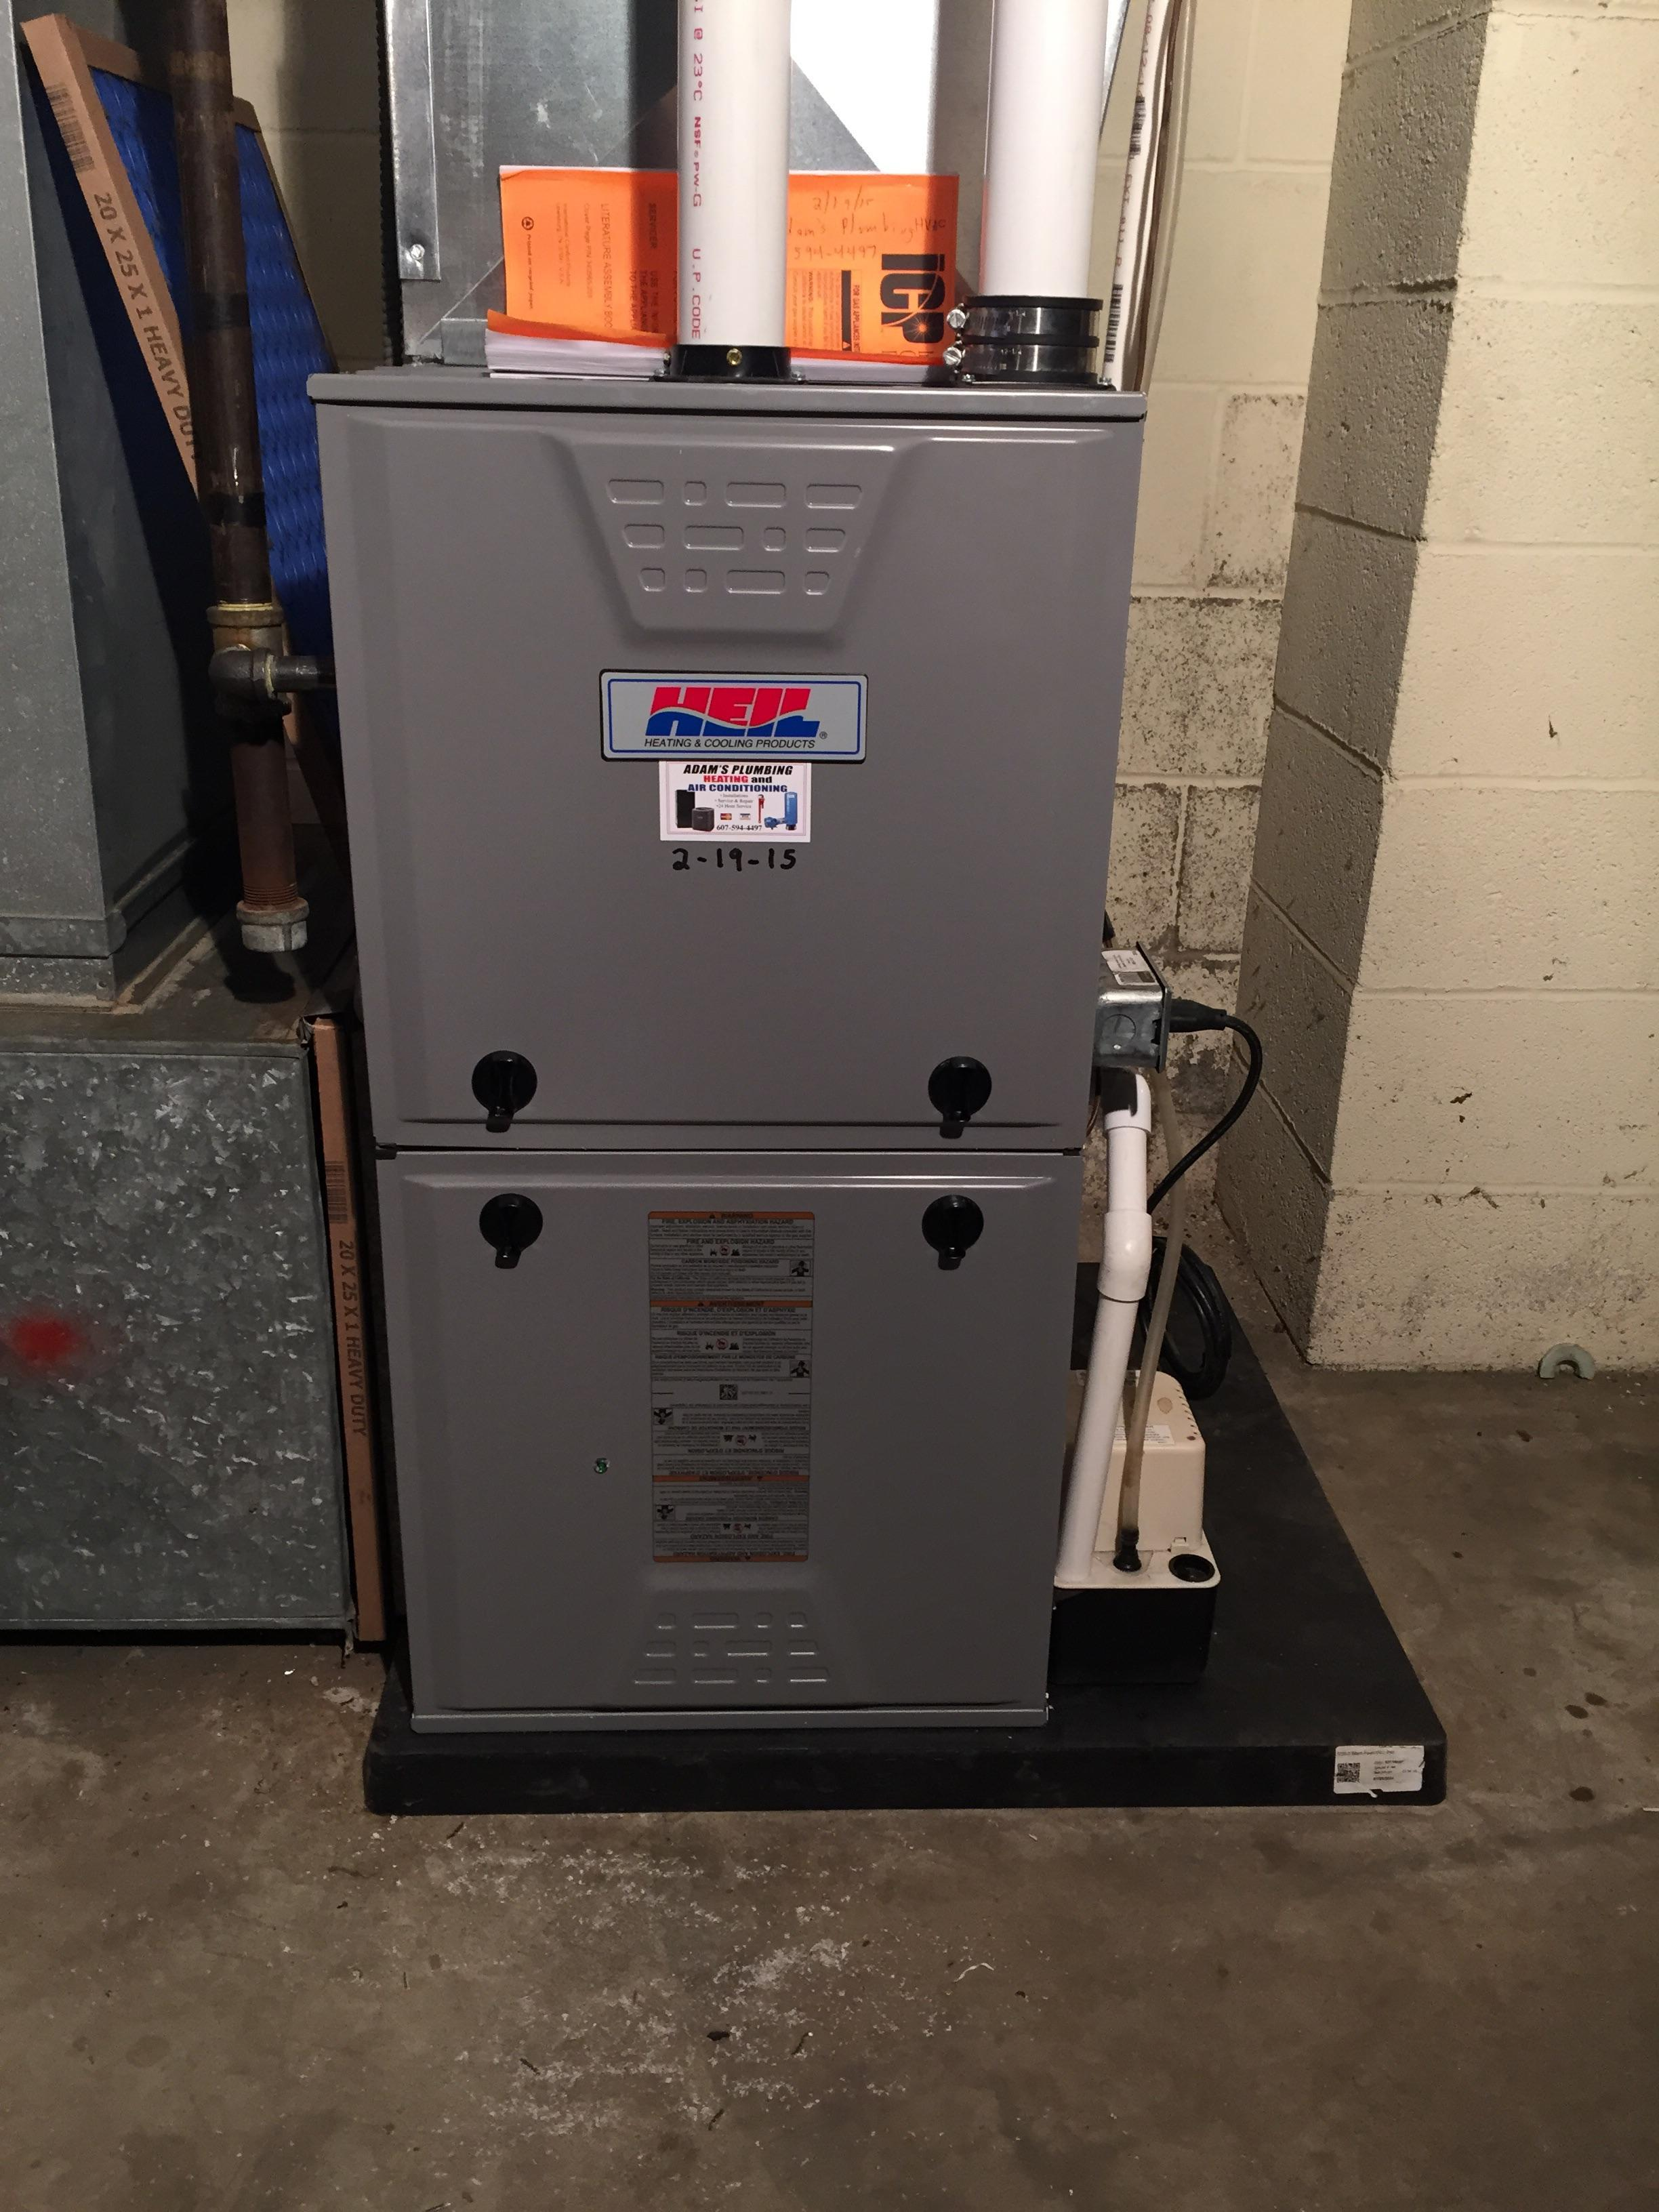 New Furnace, replaced a continuing problematic older furnace